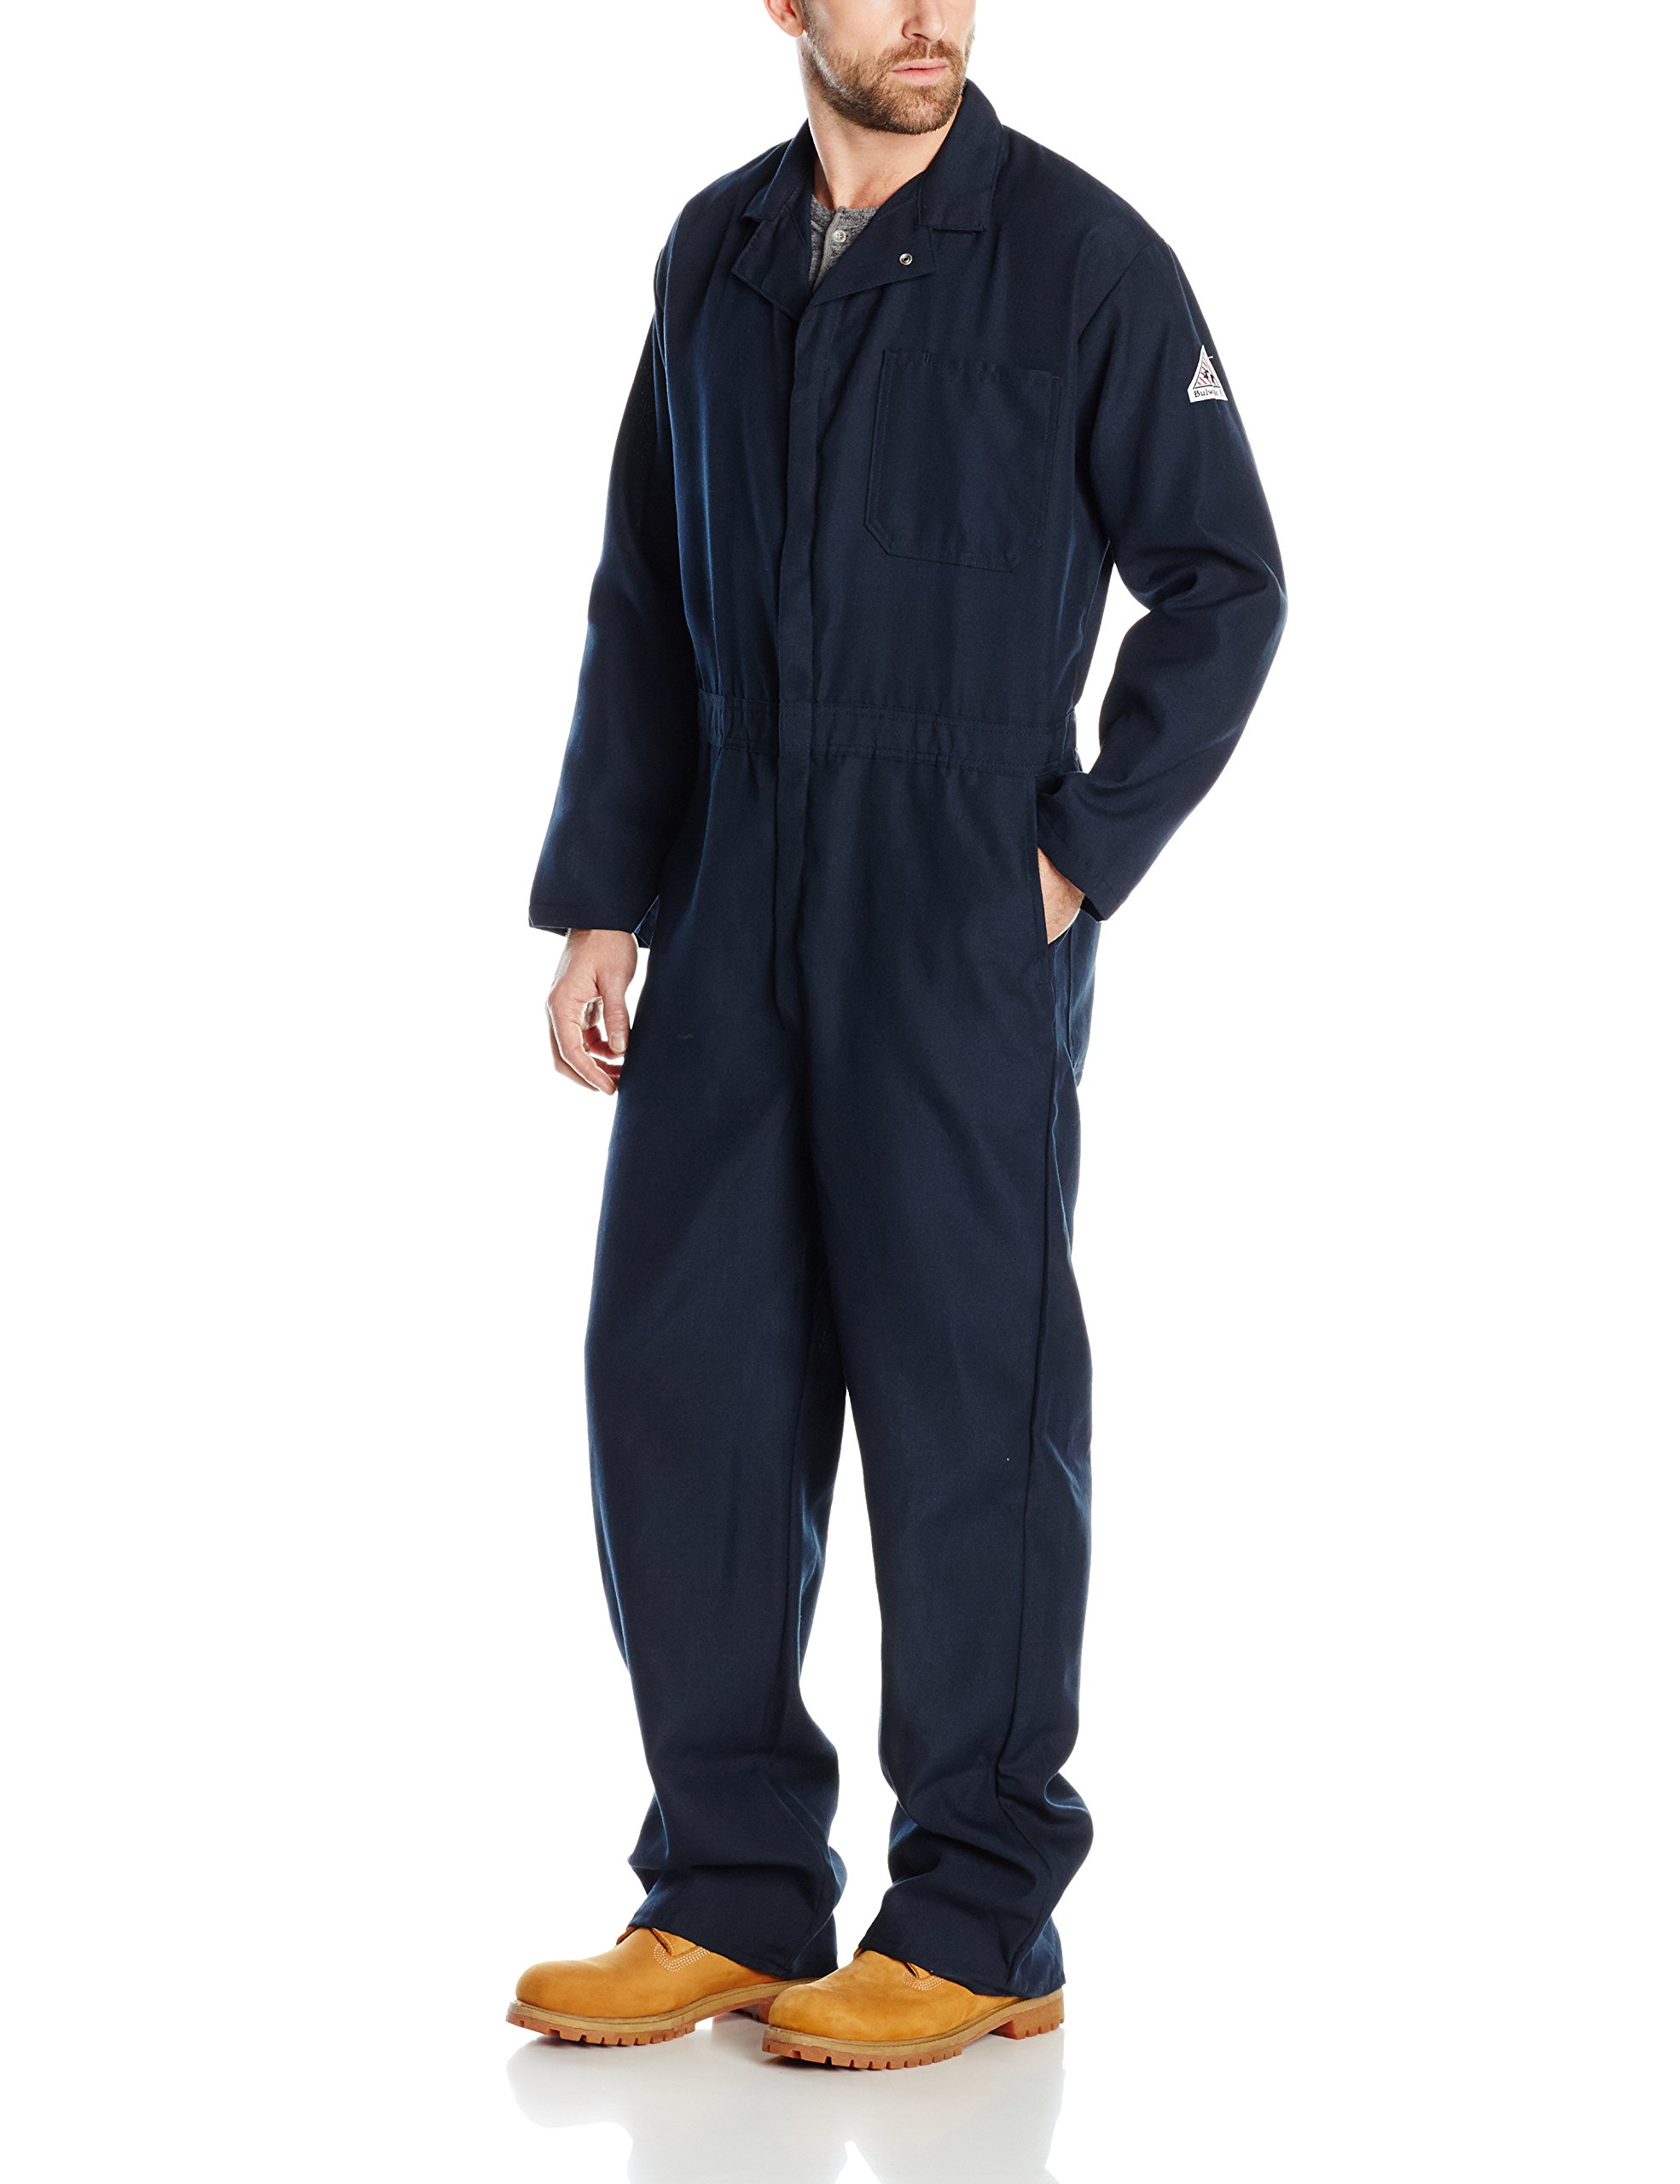 Bulwark Men's Flame Resistant 4.5 oz Nomex IIIA Classic Coverall with Hemmed Sleeves, Navy, 42 Long